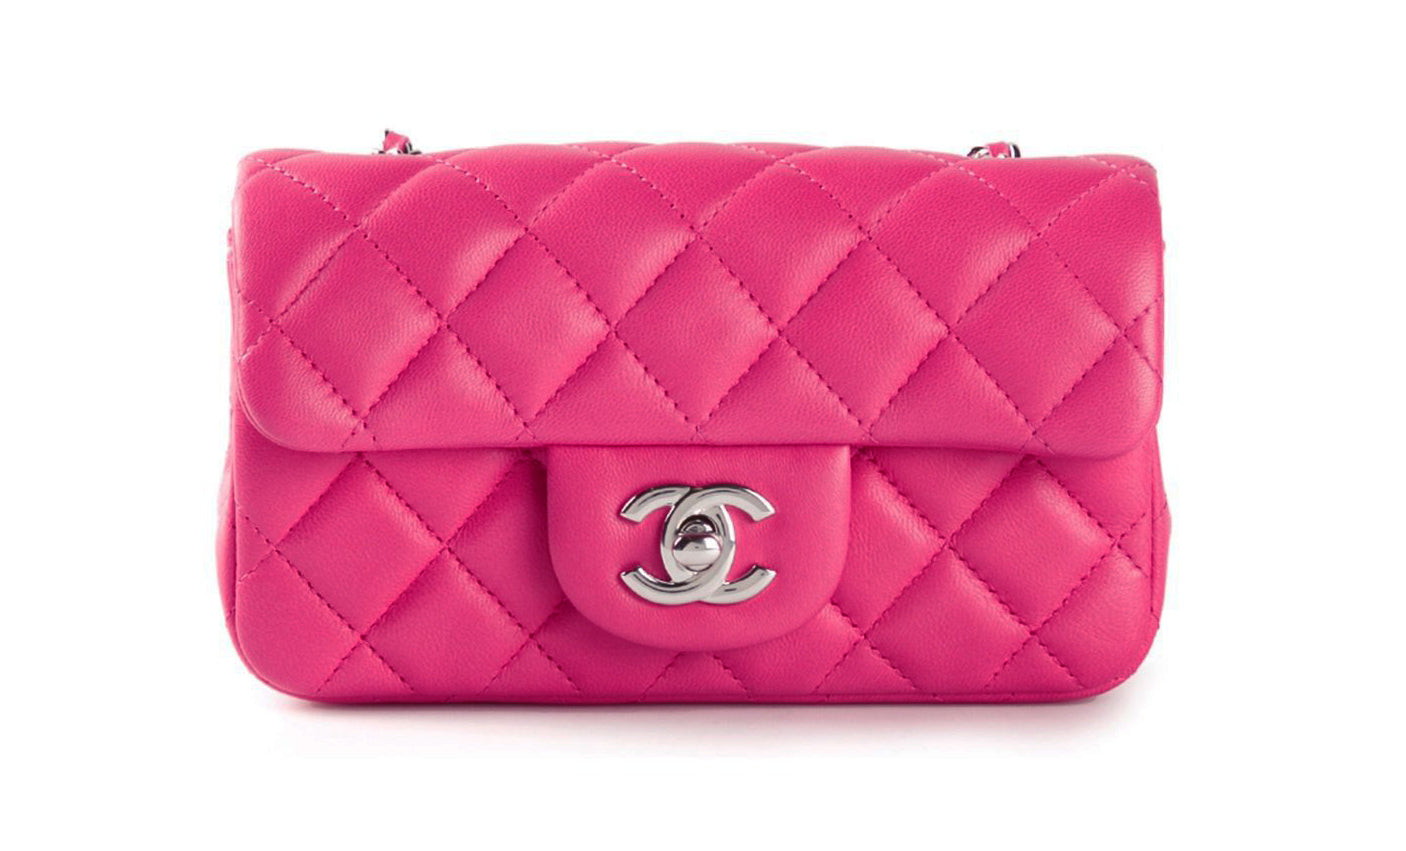 3311b0391c6d6 Chanel Rectangular Mini Pink Bag – GlamHub